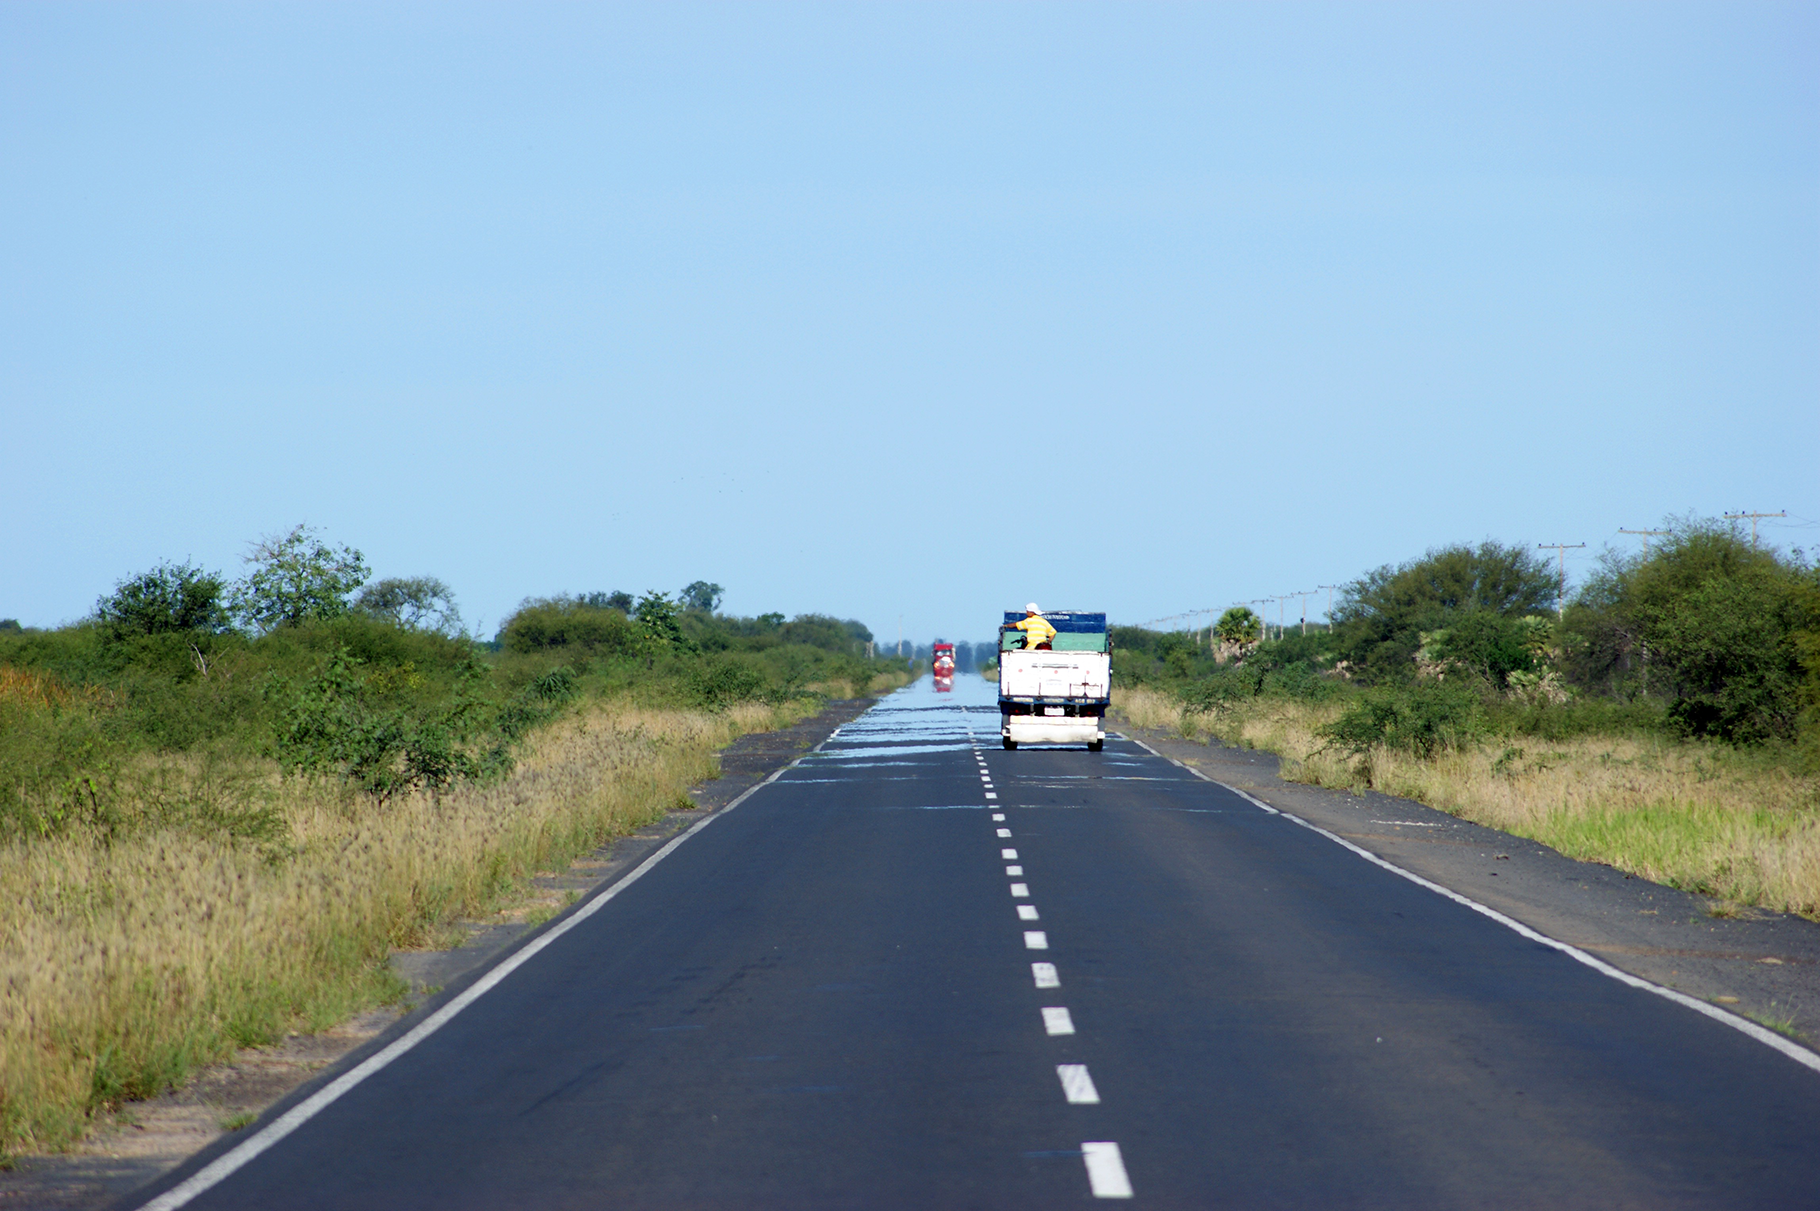 Paraguay's first PPP highway project secures financing